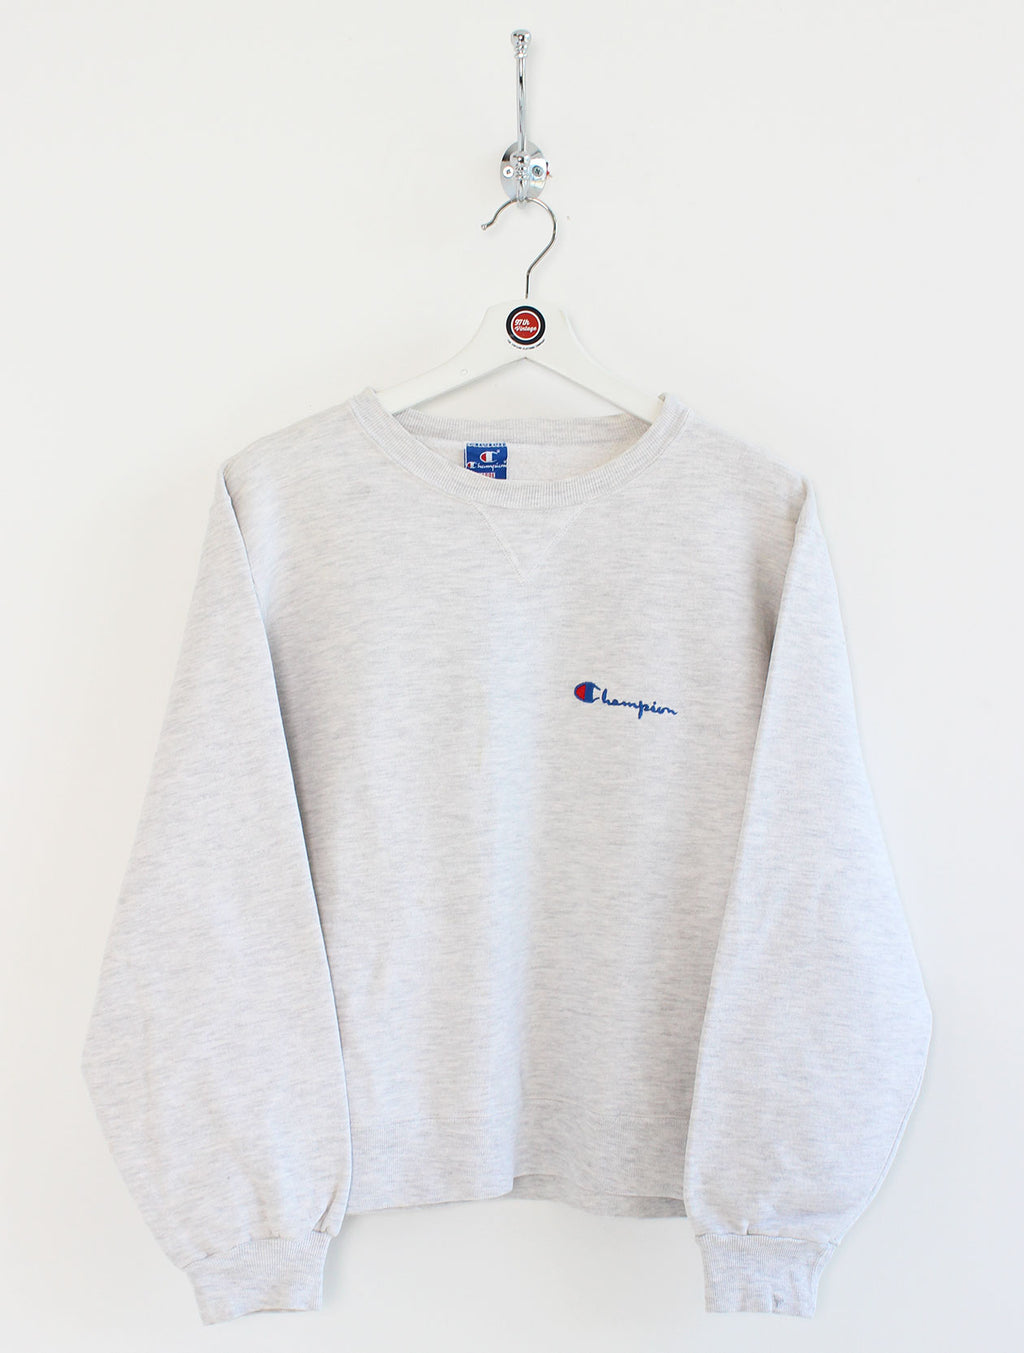 Women's Champion Sweatshirt (L)